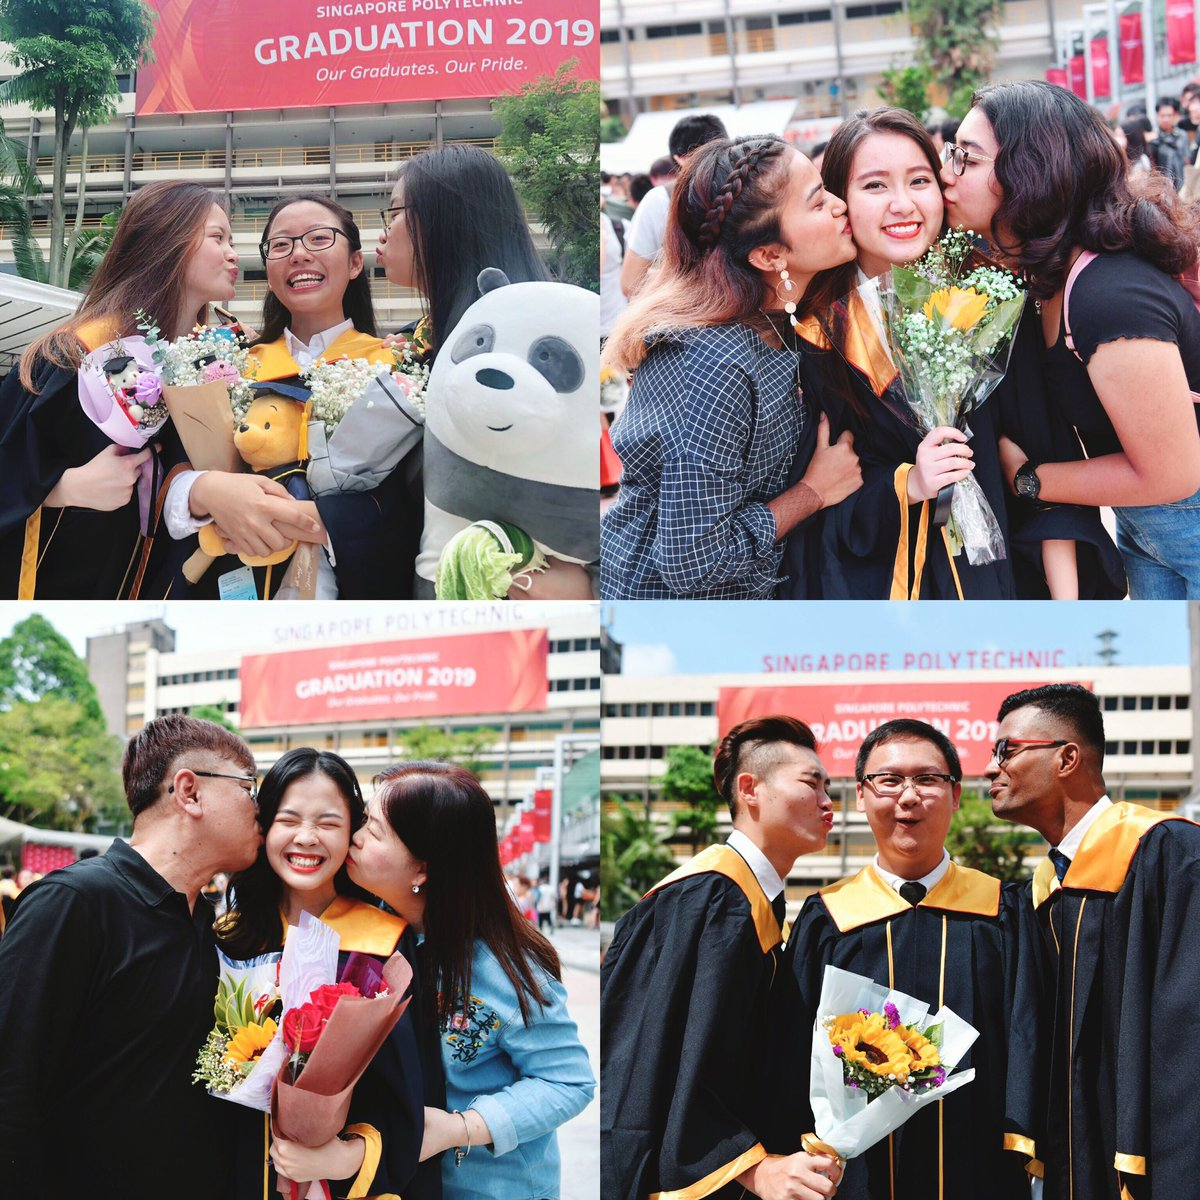 It's day  of graduation! Featuring our Business School graduates  Don't be shy to show your love and appreciation for your #SPfam!  Remember to tag @singaporepoly on your IG stories to be featured! #speye #singaporepoly #SPGrad19 pic.twitter.com/ZKtU8qe0kl